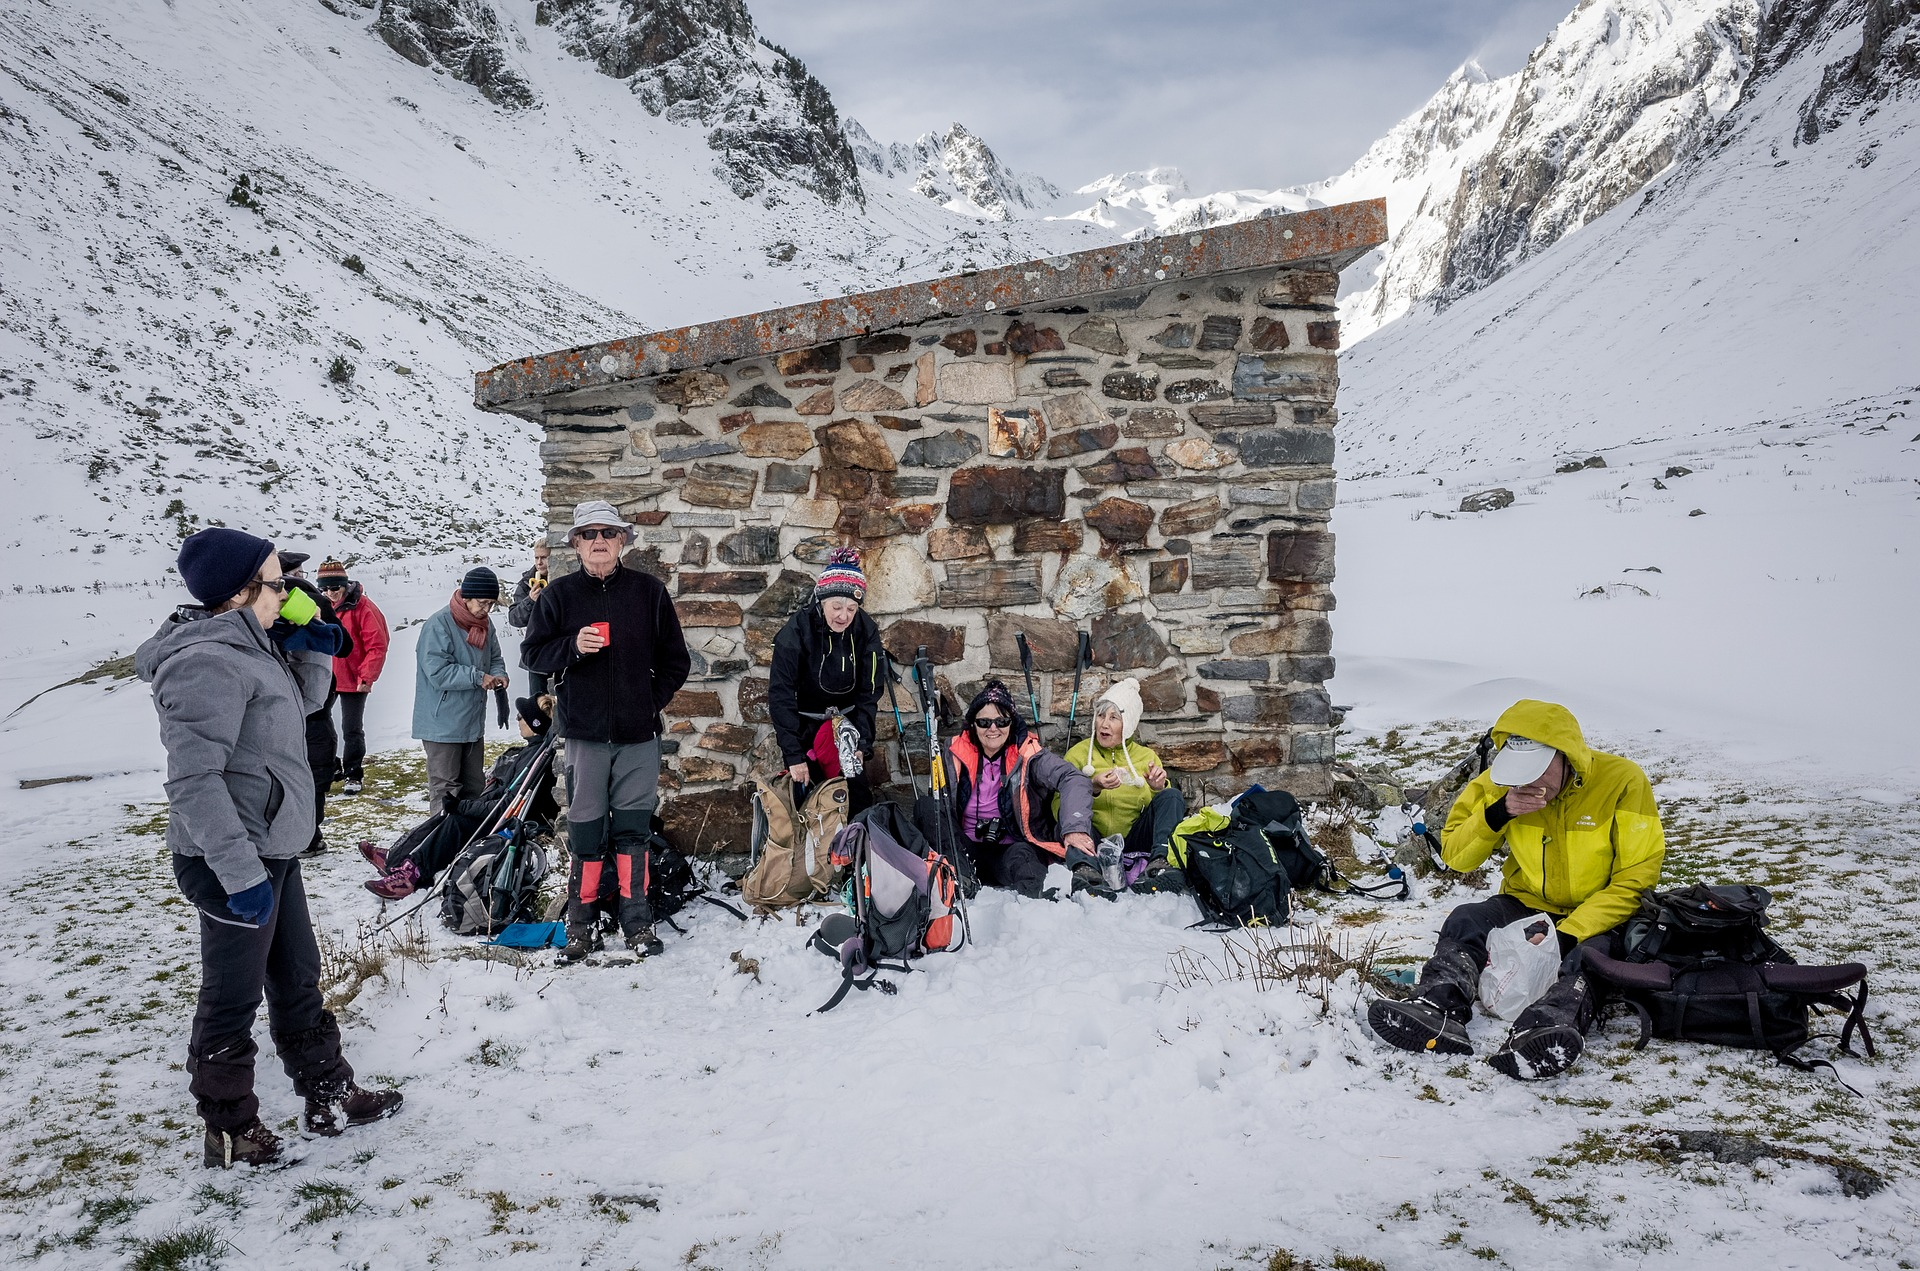 hiking group shelter snow winter